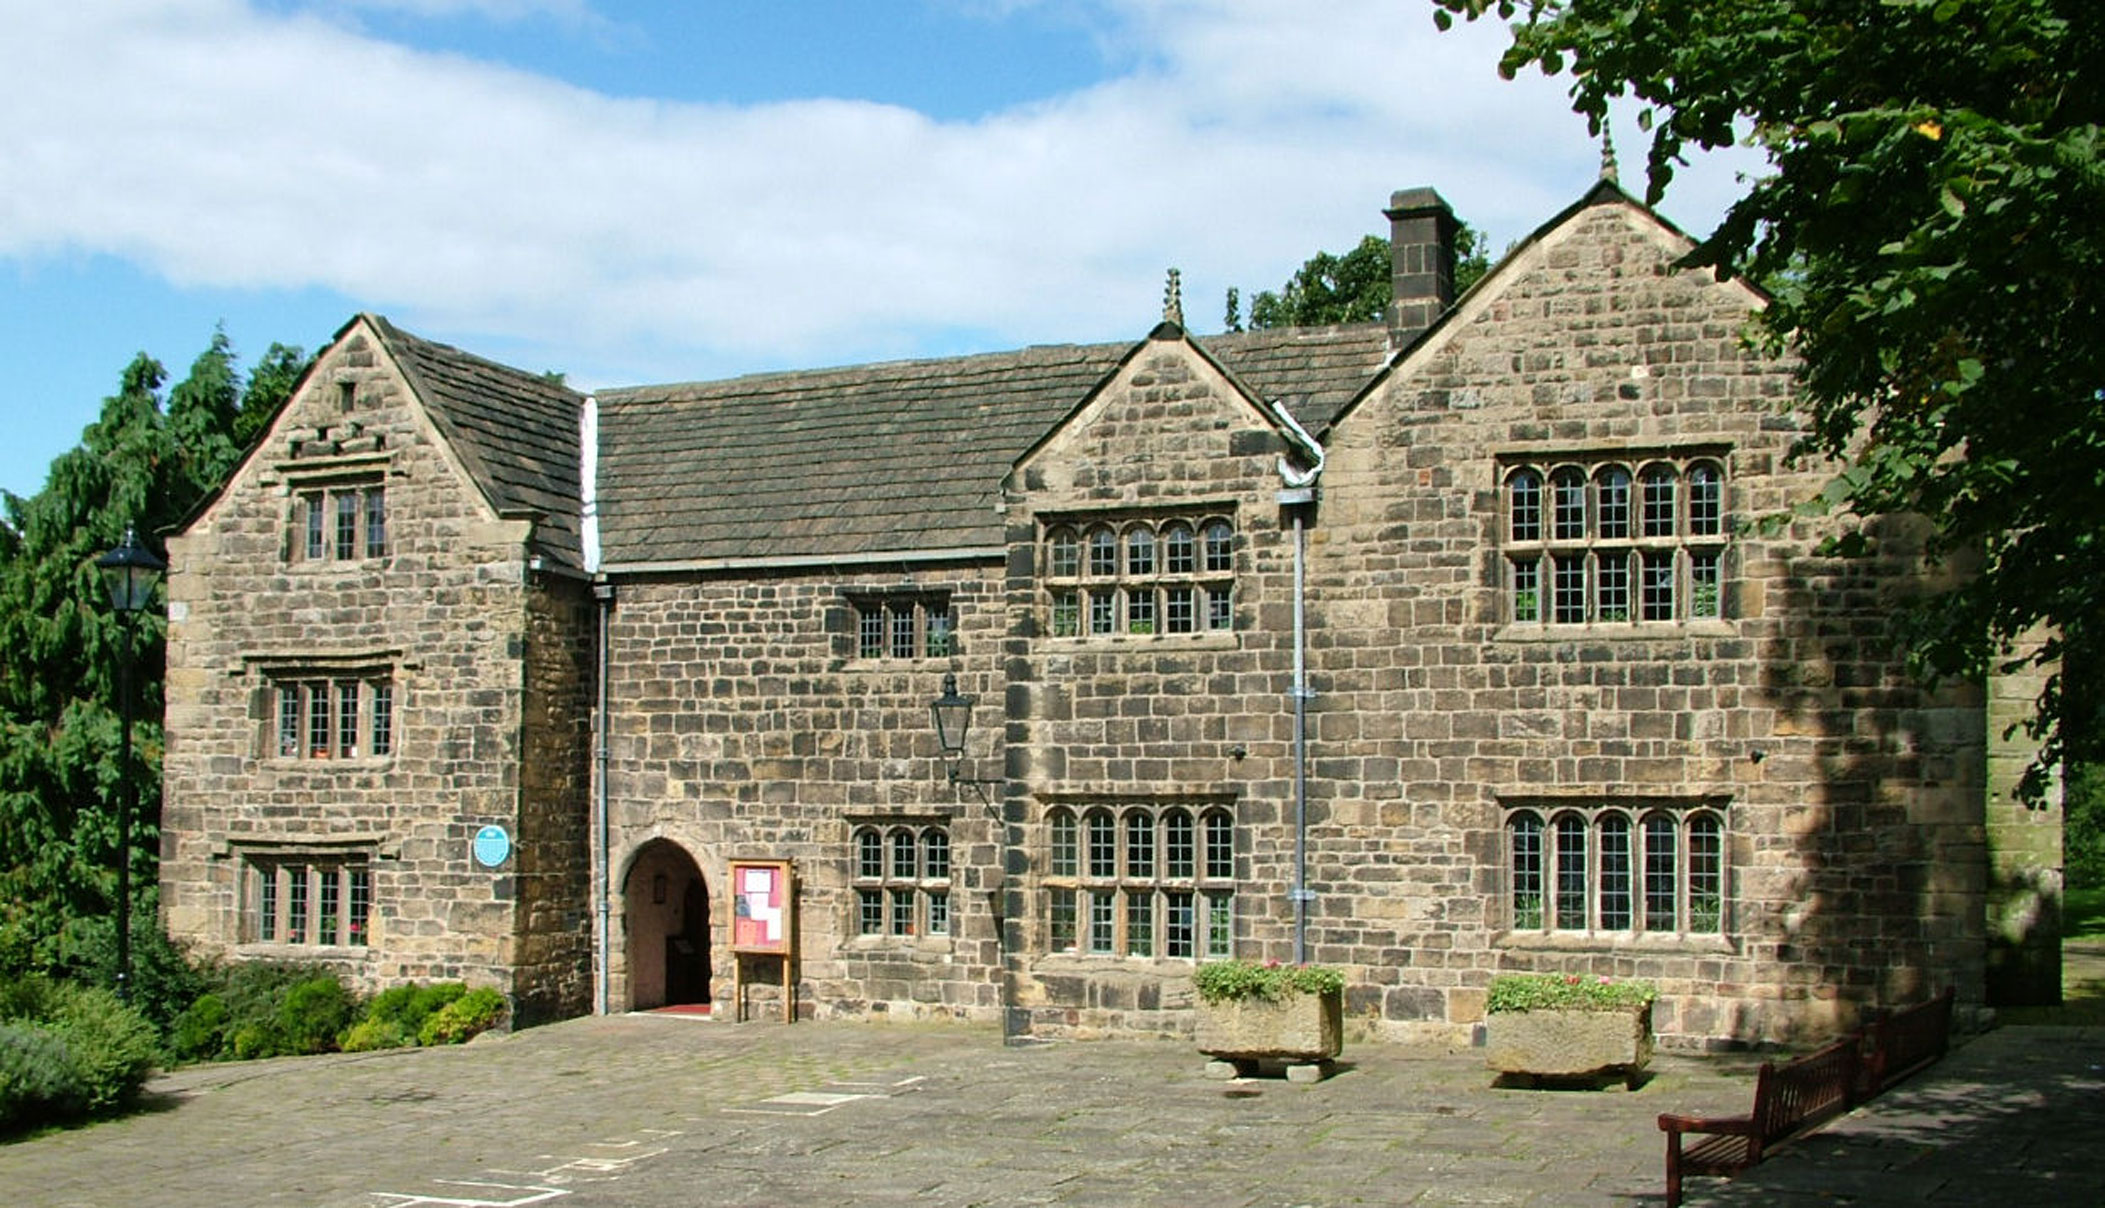 The Manor House, Ilkley.